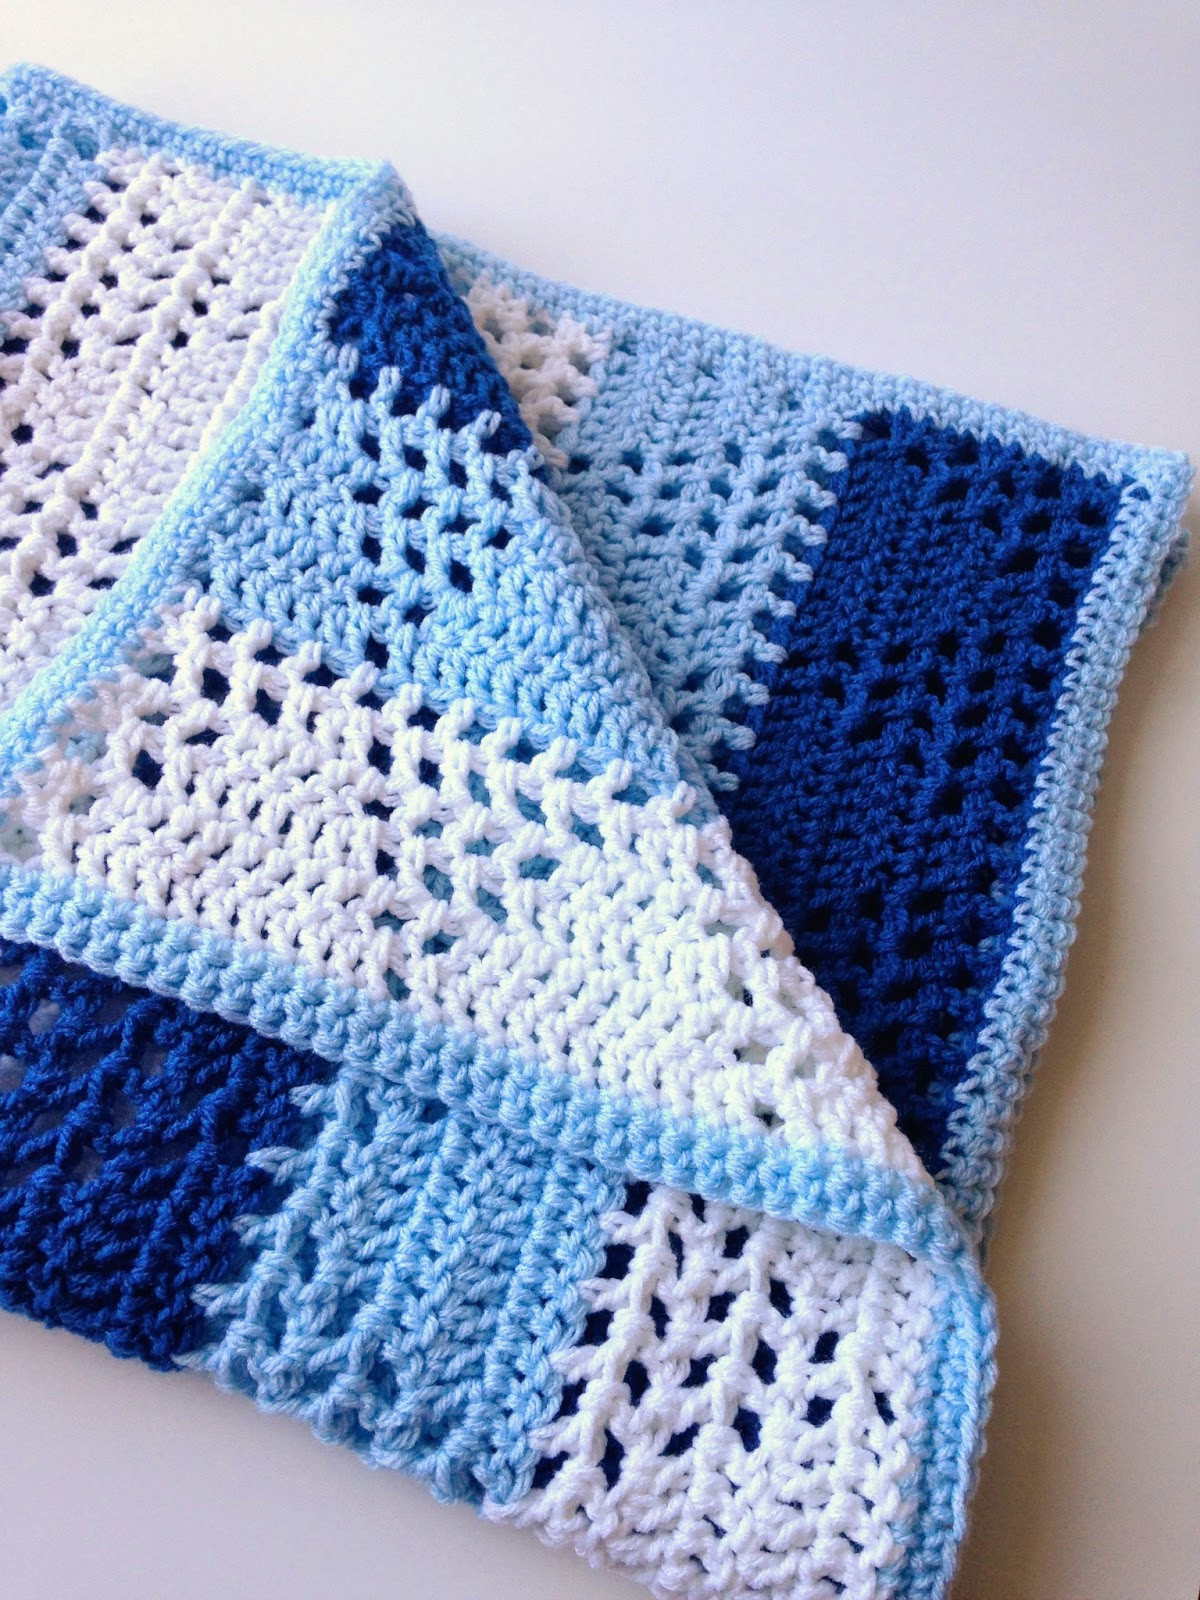 Baby Boy Crochet Blanket Patterns Awesome 5 Little Monsters Triangles & Stripes Baby Blanket Of Baby Boy Crochet Blanket Patterns Luxury Baby Blanket with Cabled Border Crochet Pattern